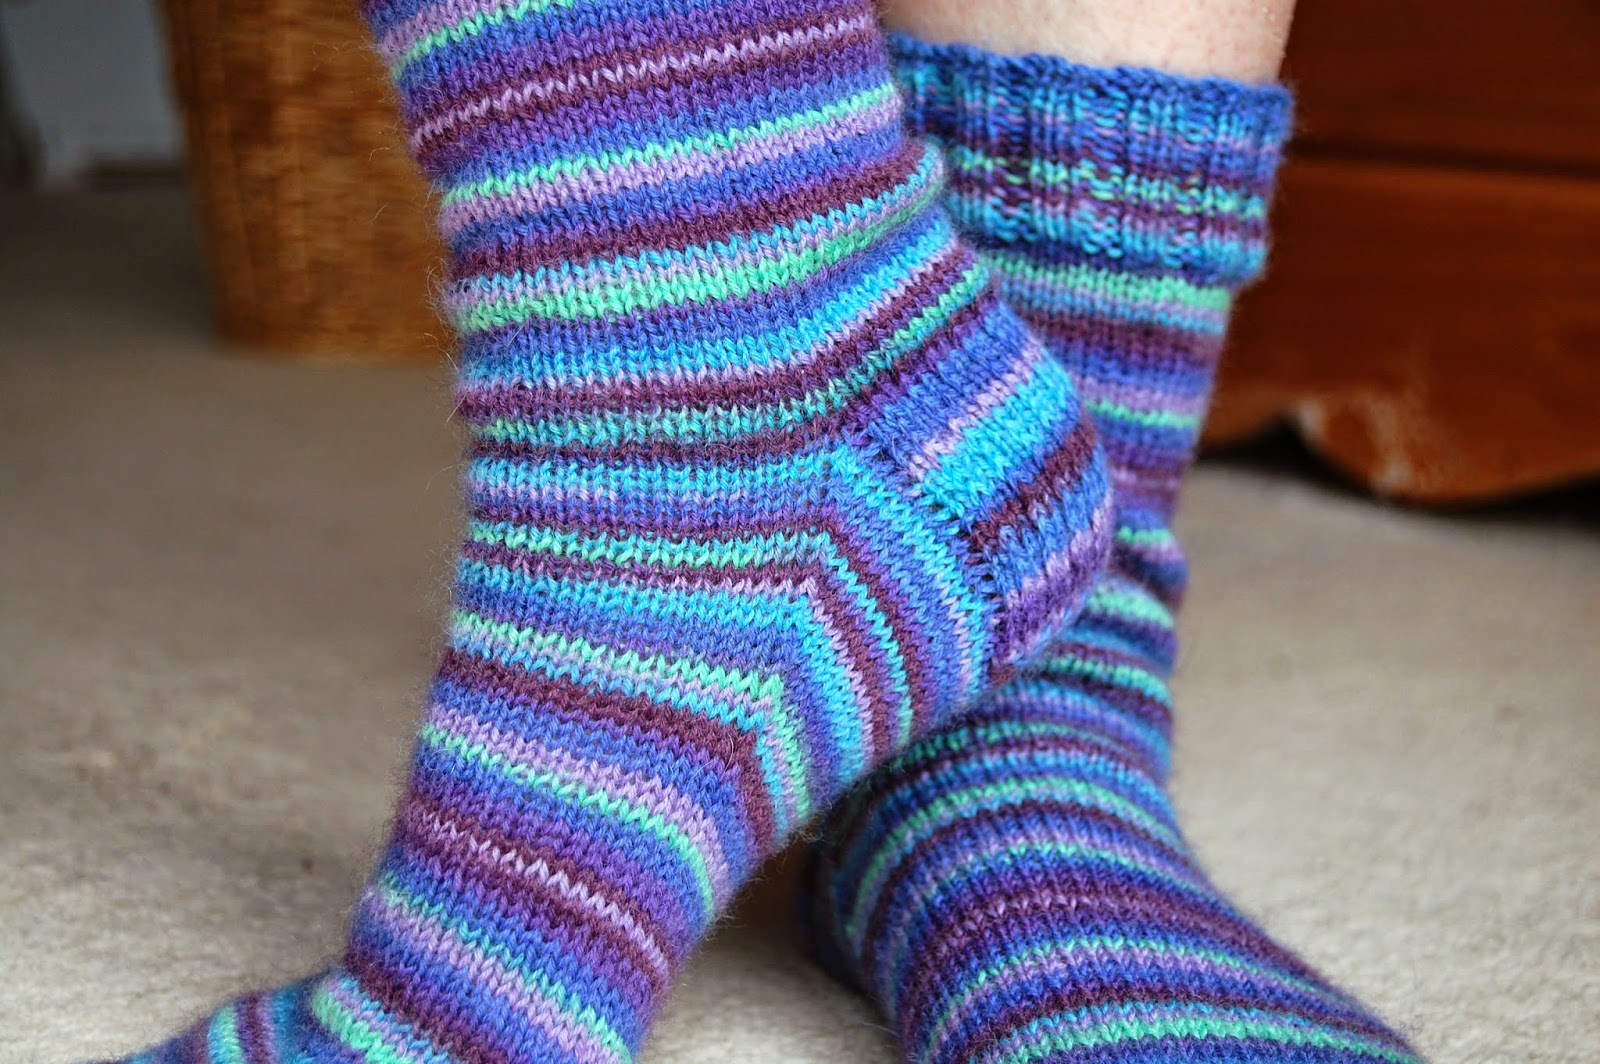 Free Knitting Patterns For Socks On Circular Needles : Winwick Mum: Basic 4ply sock pattern and tutorial - easy beginner sock knitting!